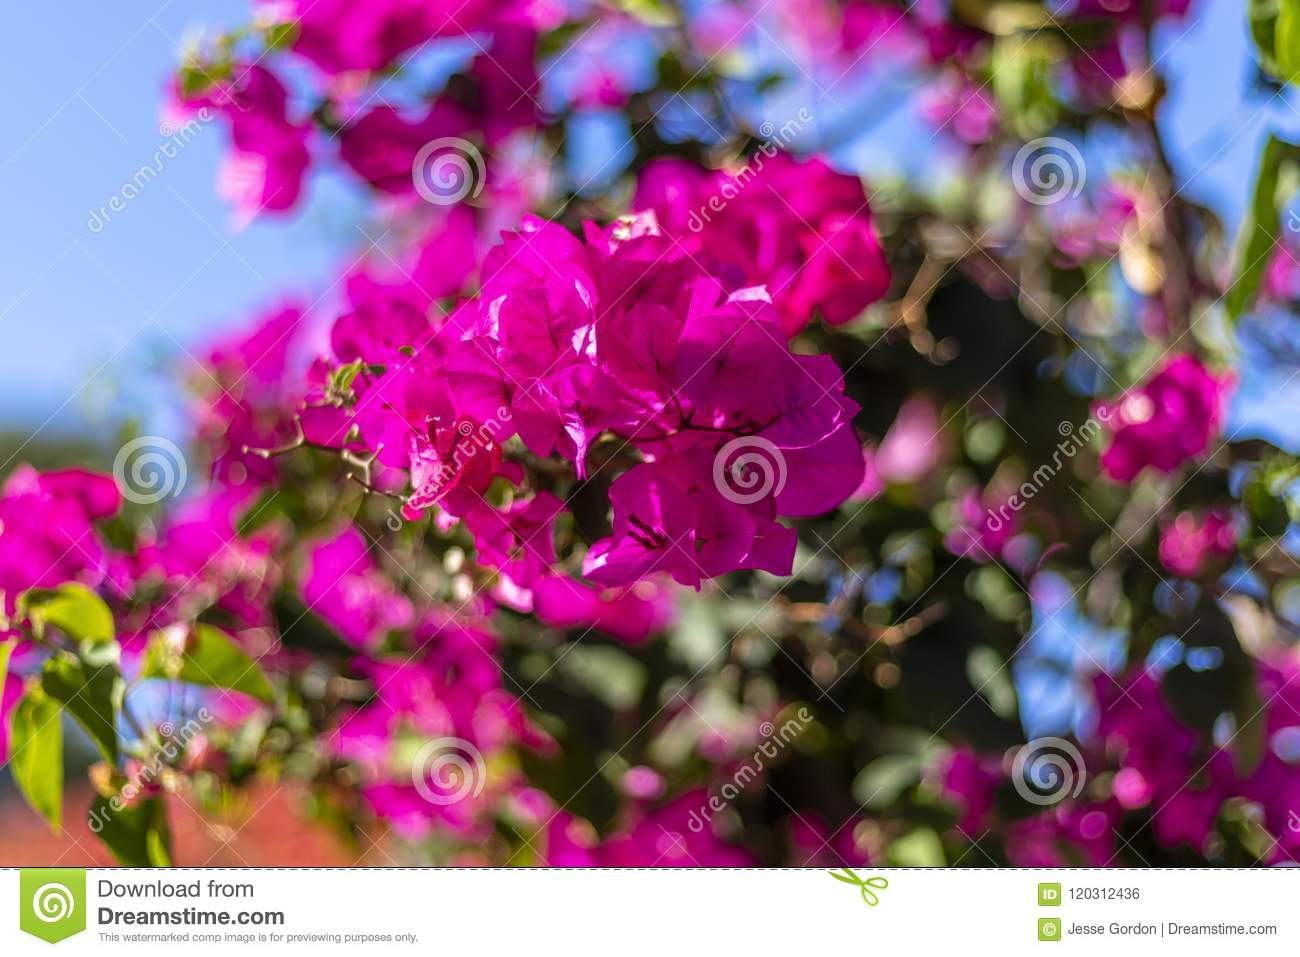 Bright Pink Flower Details Stock Photo Image Of Flower 120312436